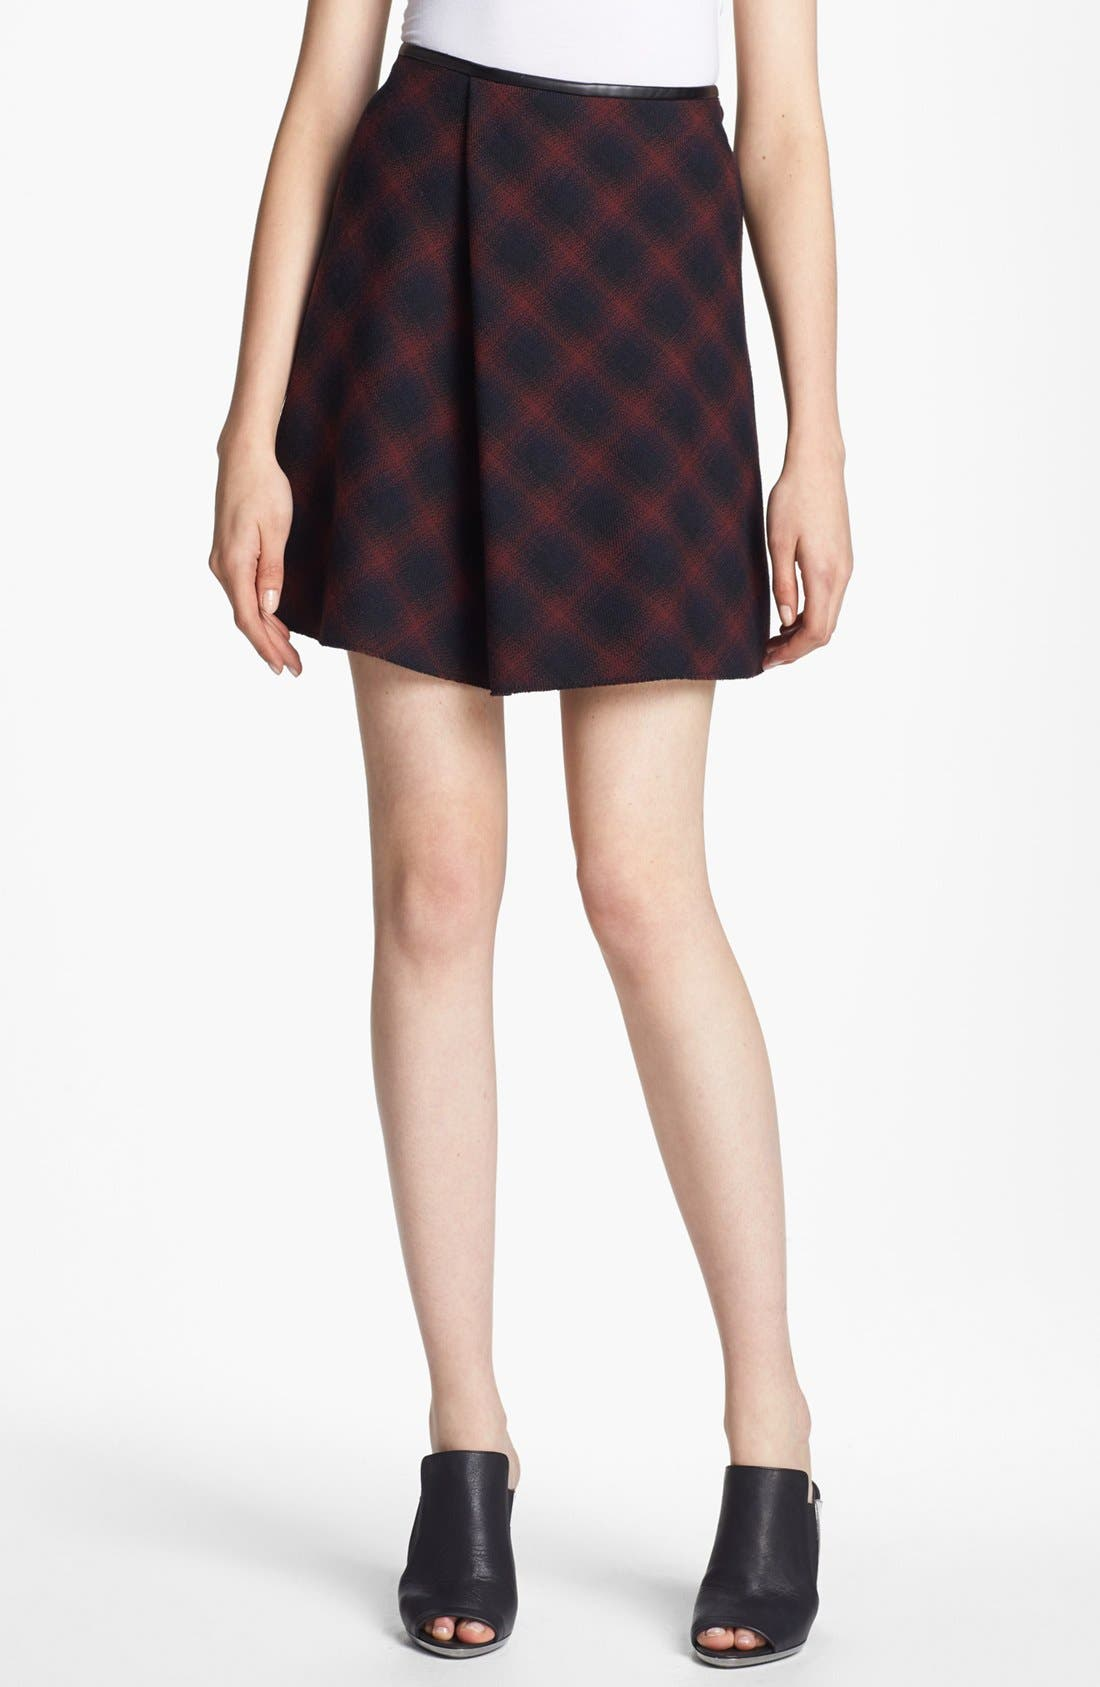 Alternate Image 1 Selected - 3.1 Phillip Lim Flared Plaid Skirt